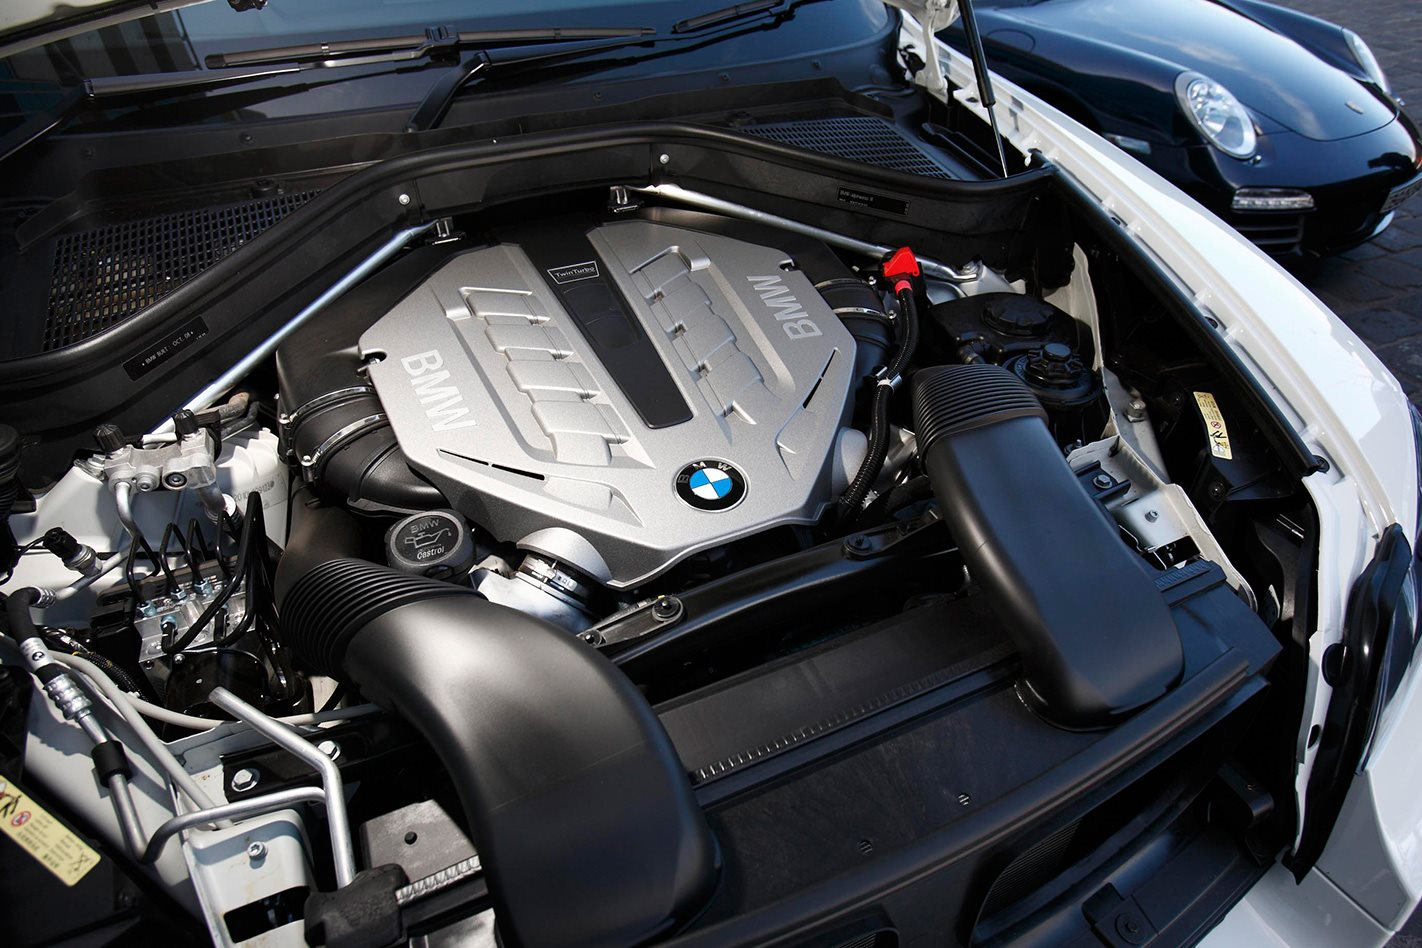 BMW-X6-engine.jpg